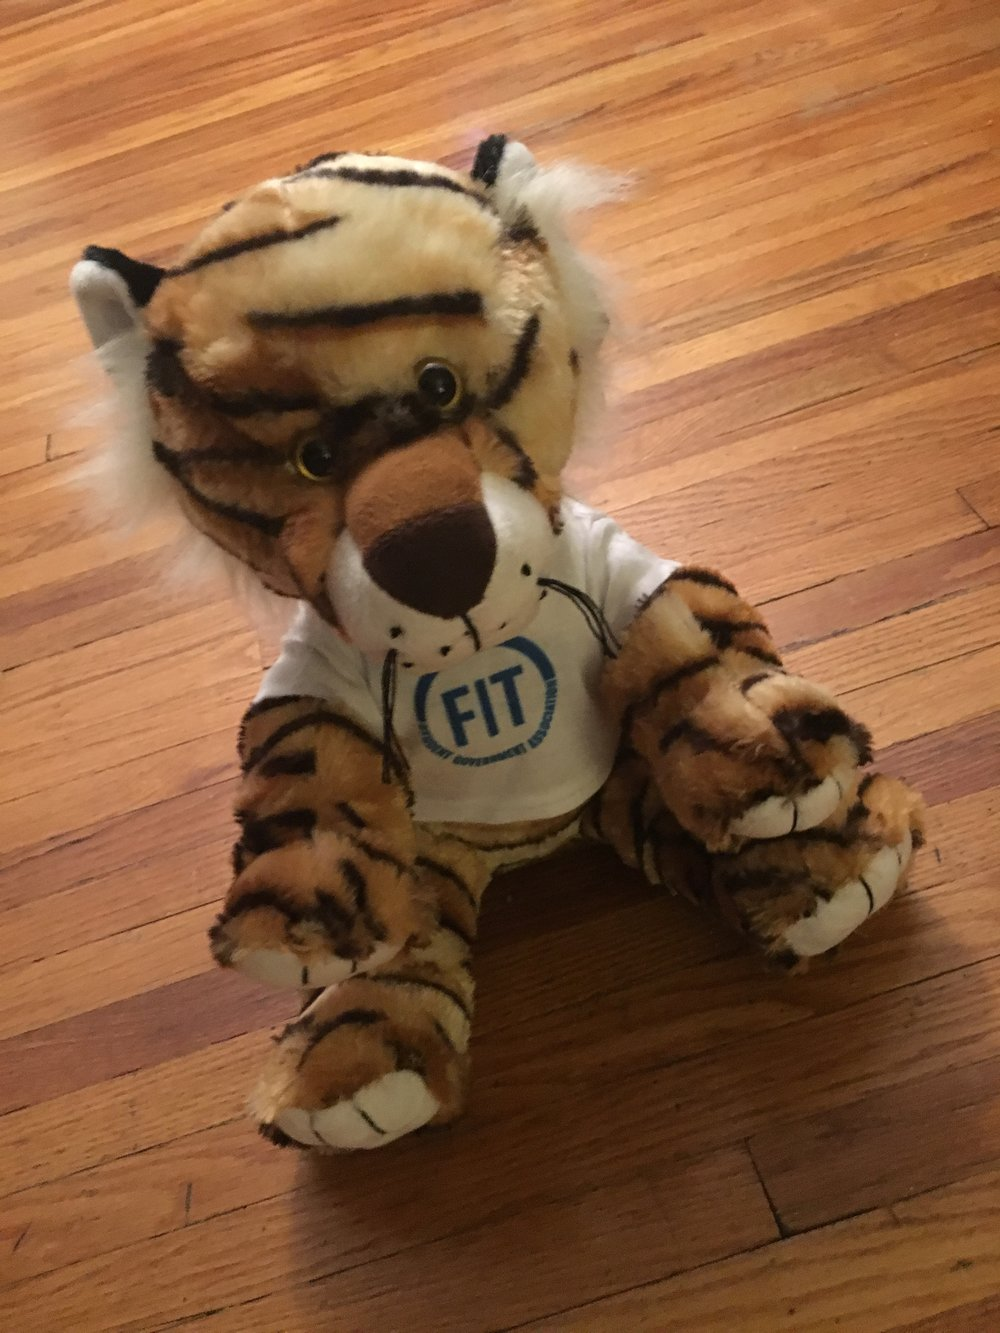 My tiger friend, Tilda Tiger. FIT's mascot is the tiger, probably.